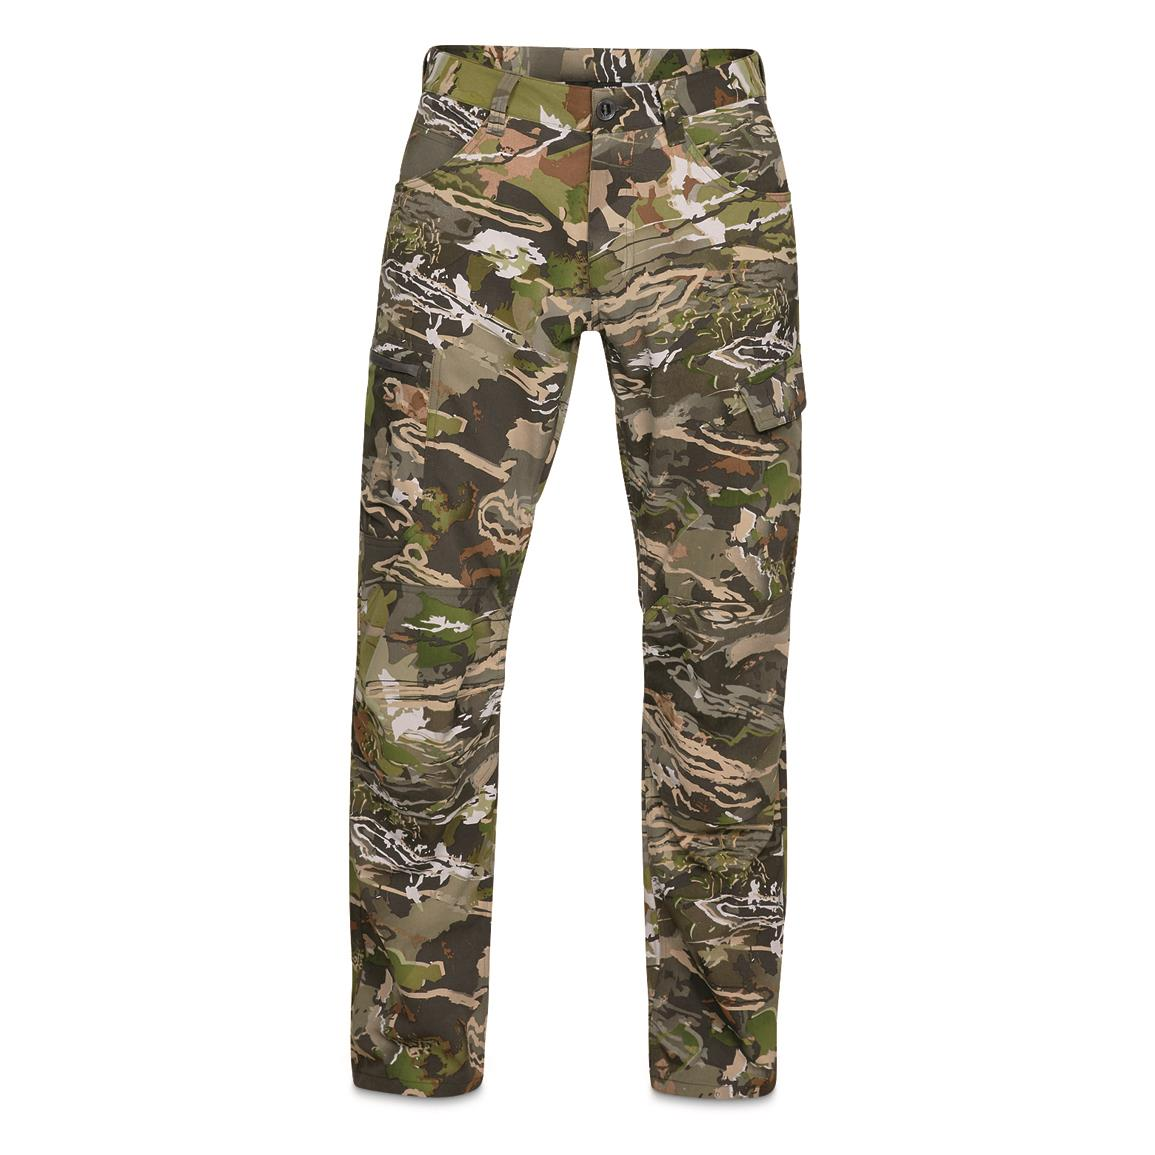 Under Armour Men's Field Ops Hunting Pants, Forest/Black